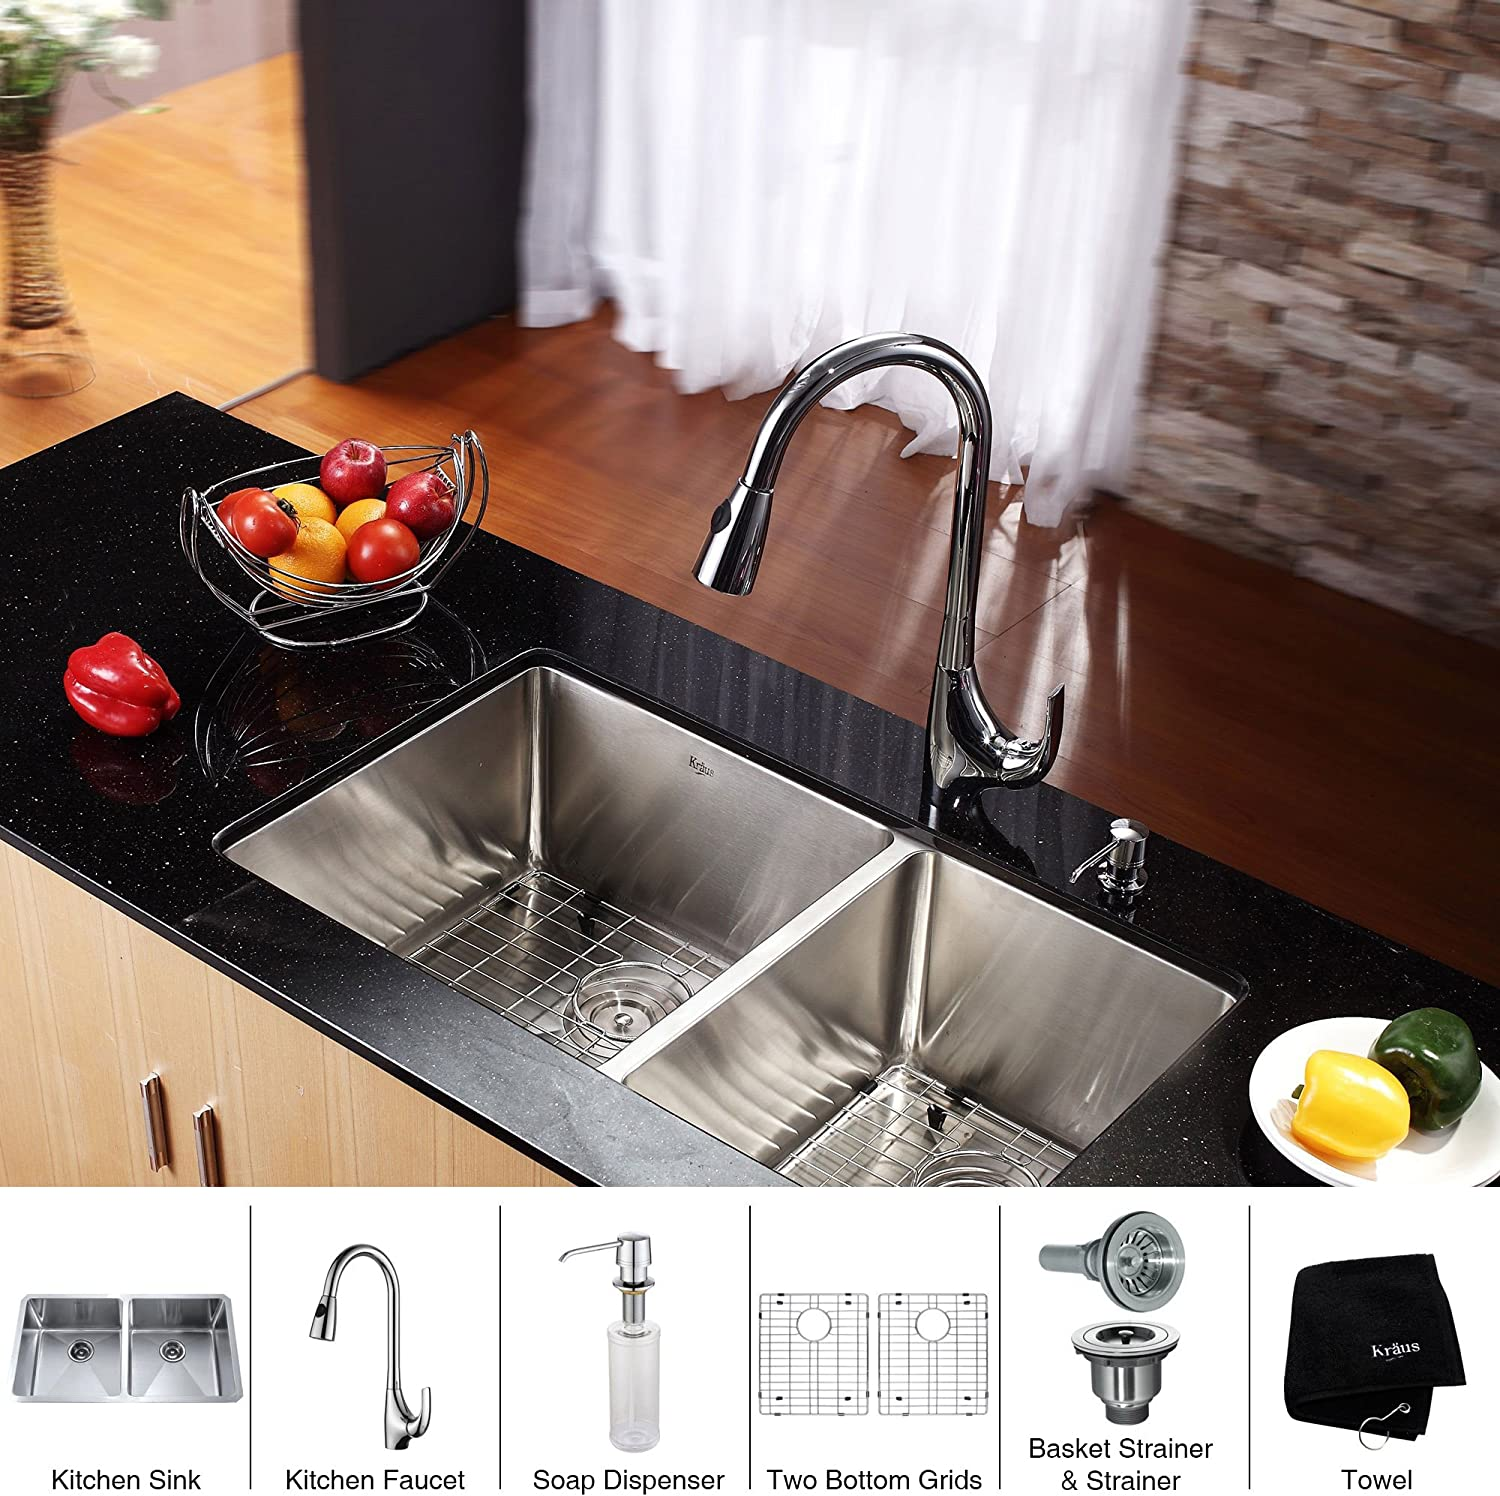 Kraus KHU102-33-KPF1621-KSD30CH 33 inch Undermount Double Bowl Stainless Steel Kitchen Sink with Chrome Kitchen Faucet and Soap Dispenser